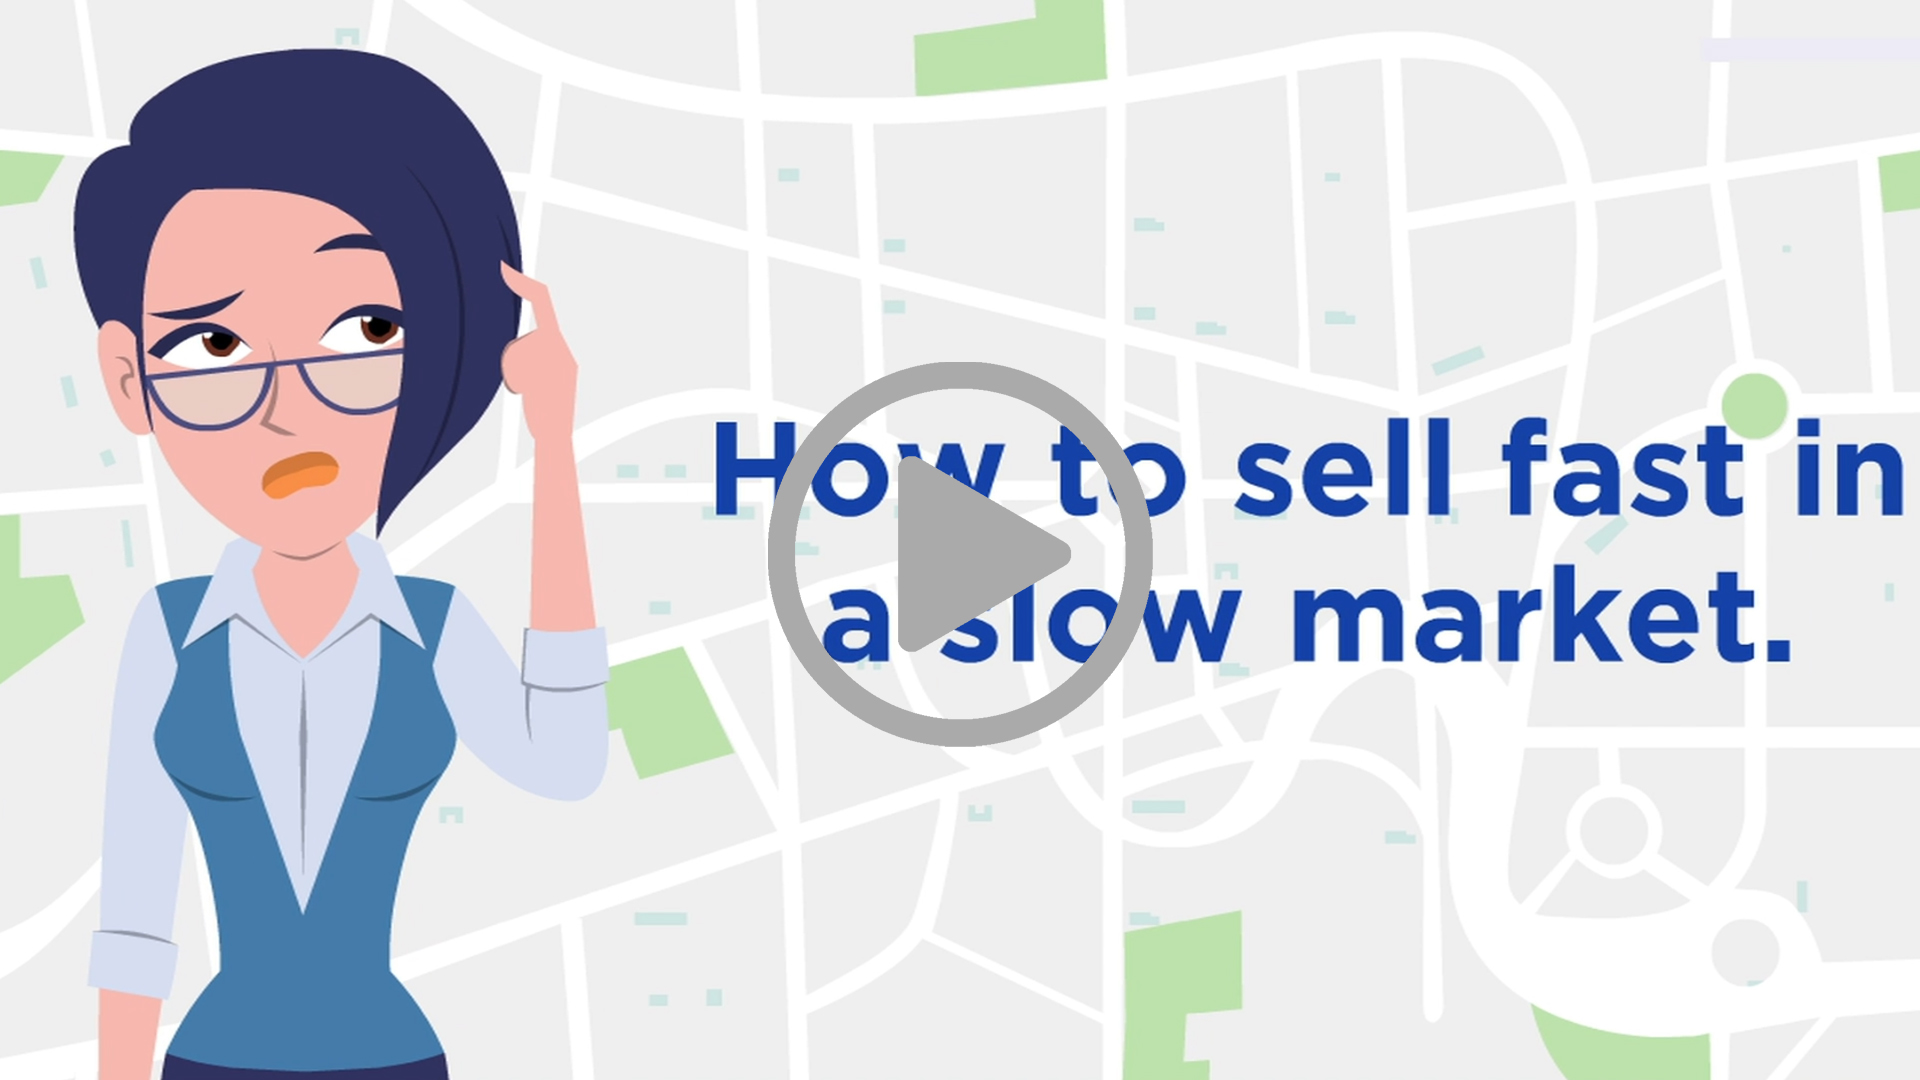 HOW TO SELL MY HOME FAST IN A SLOW MARKET